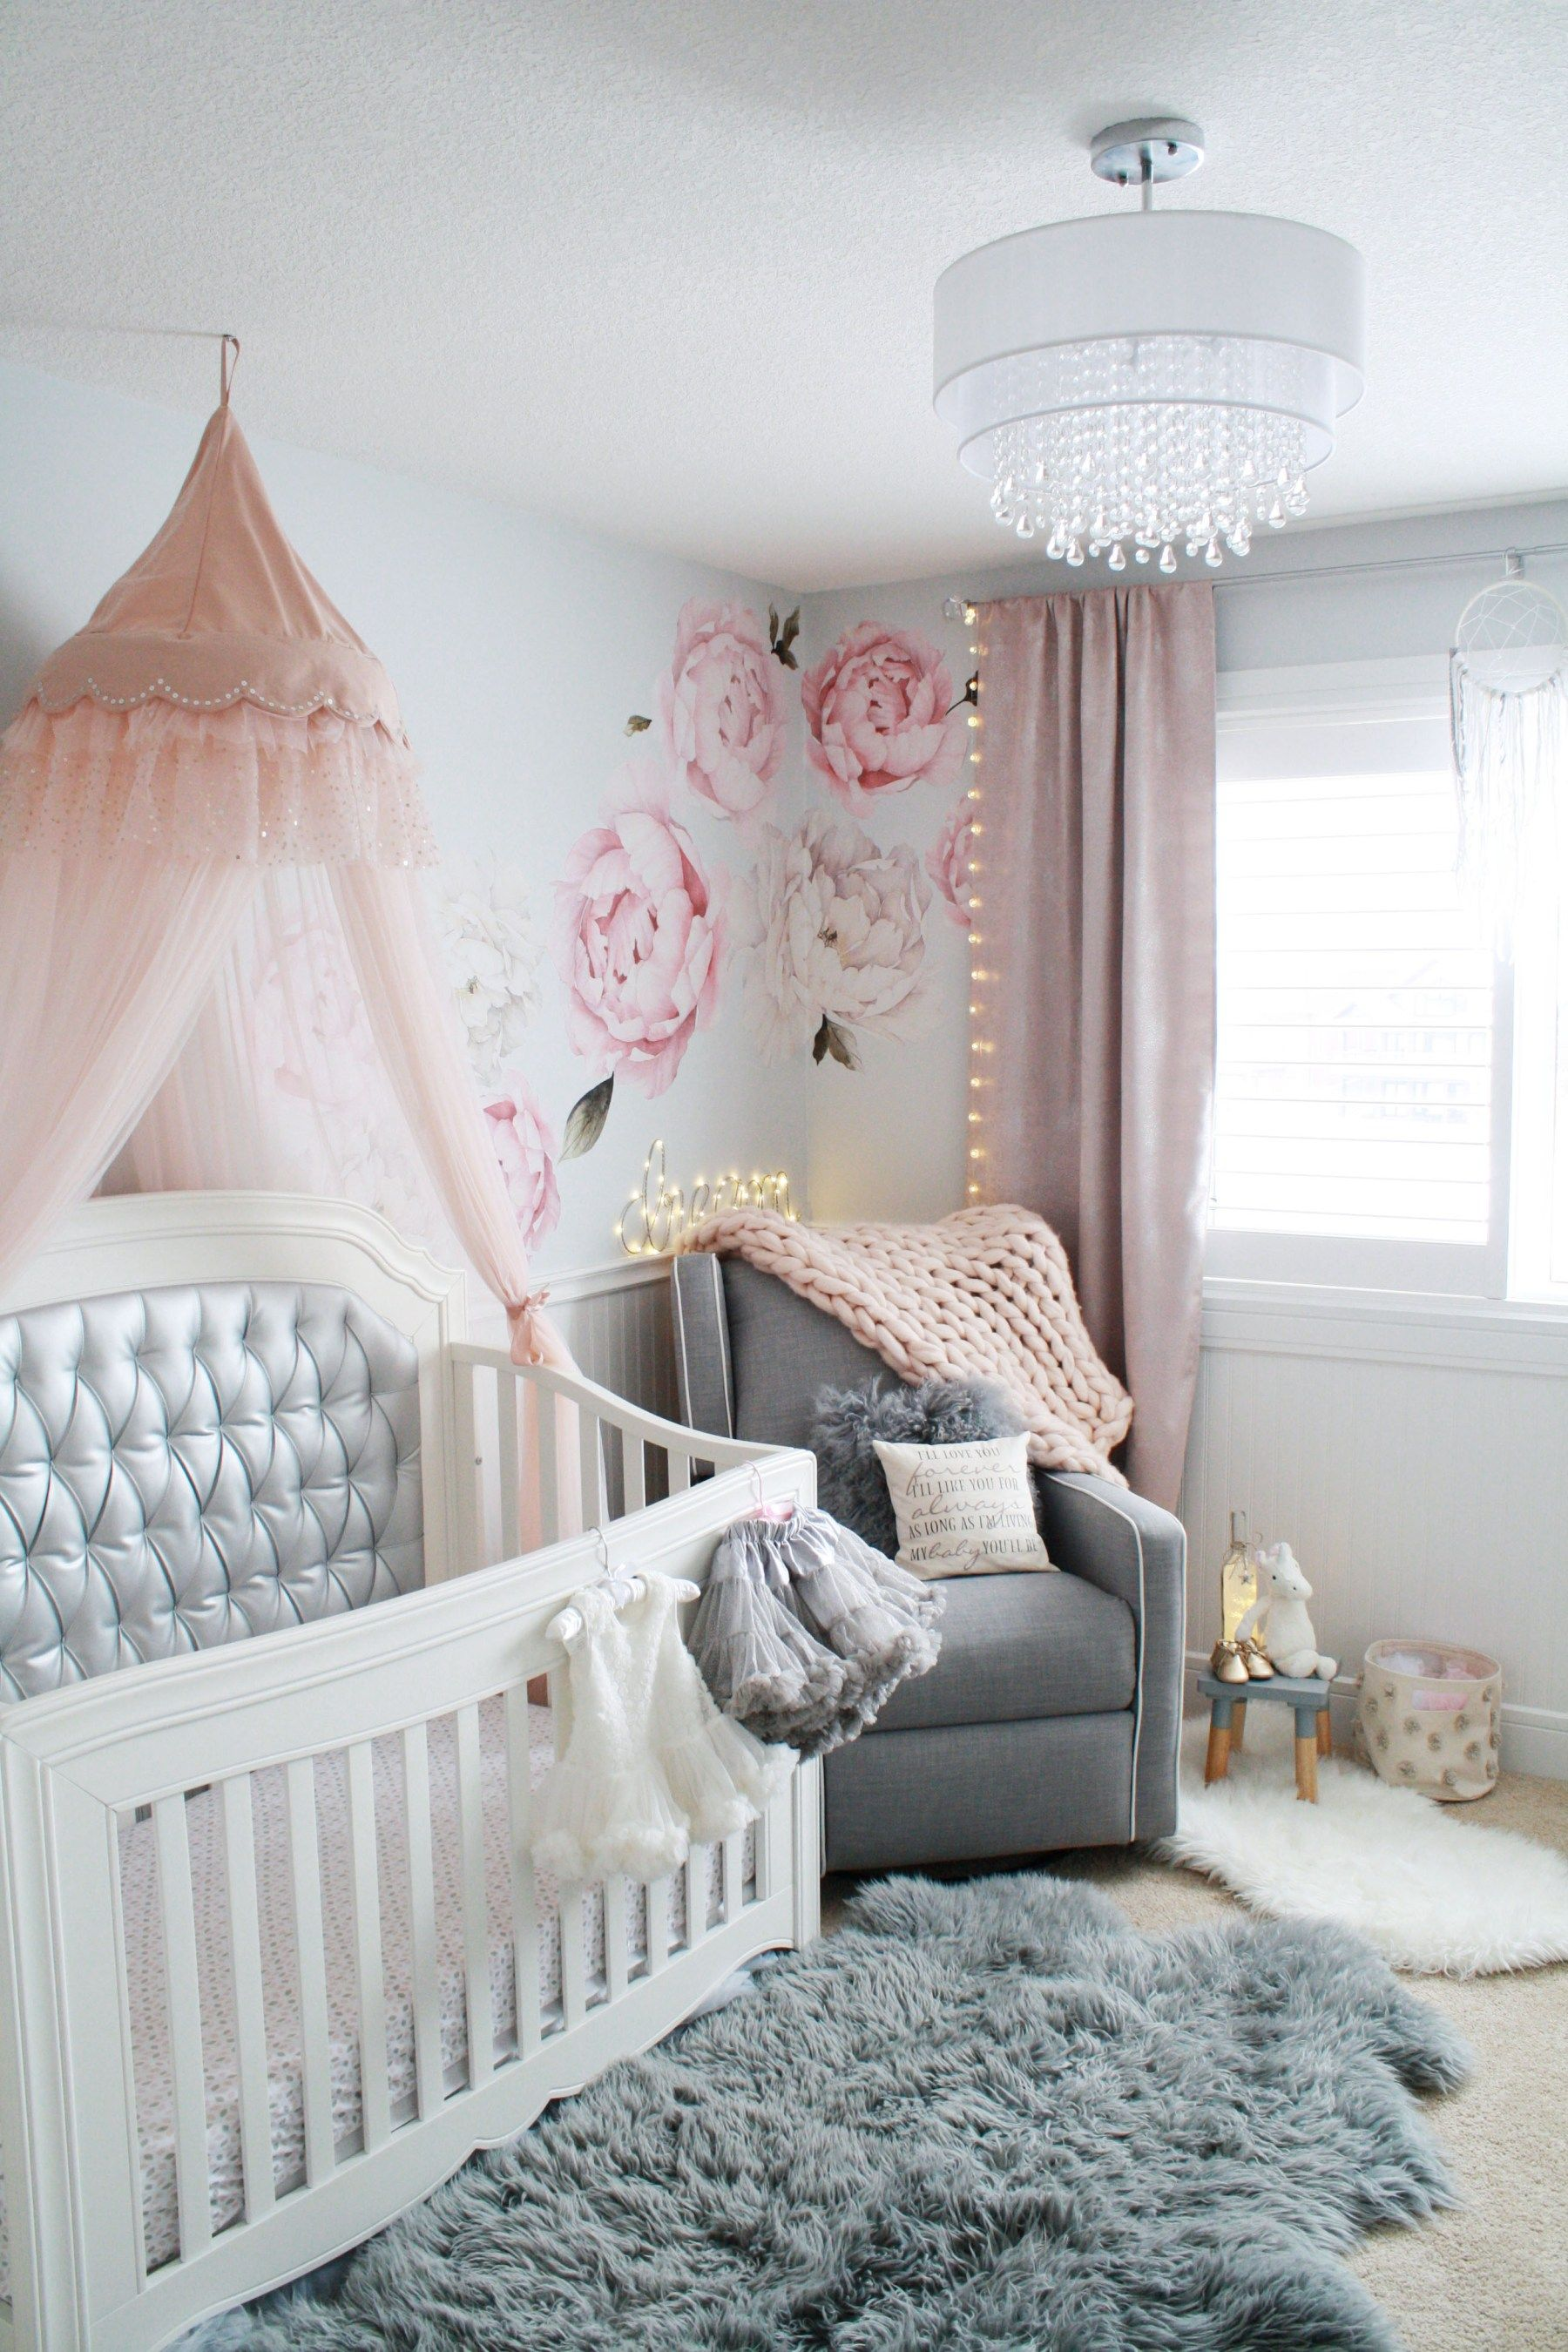 room iron white in decoration green valance ideas using nursery crib and of baby design b picture light set chandelier bed bedding for cute black delectable including